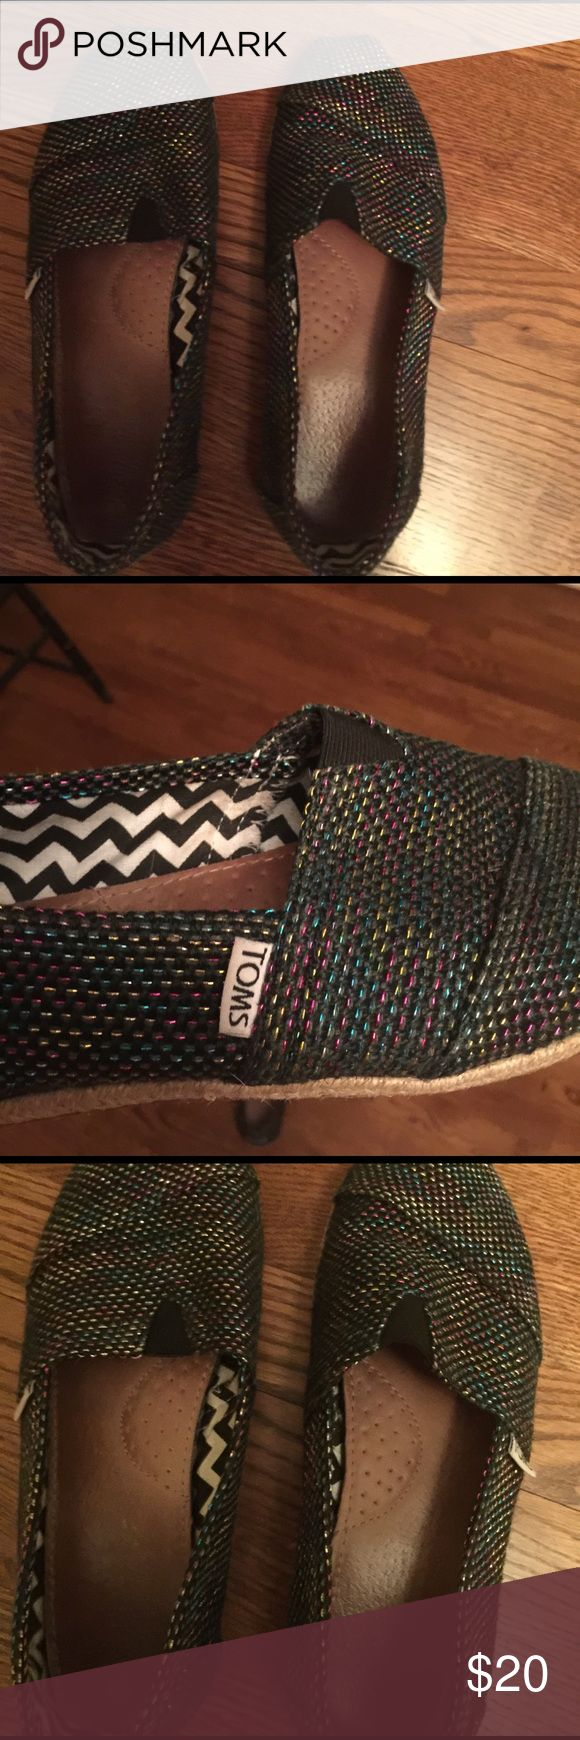 Black burlap toms with multicolored thread This is a preowned pair of toms sz 9 black burlap with multicolored metallic thread throughout. These are in great preowned condition. TOMS Shoes Espadrilles